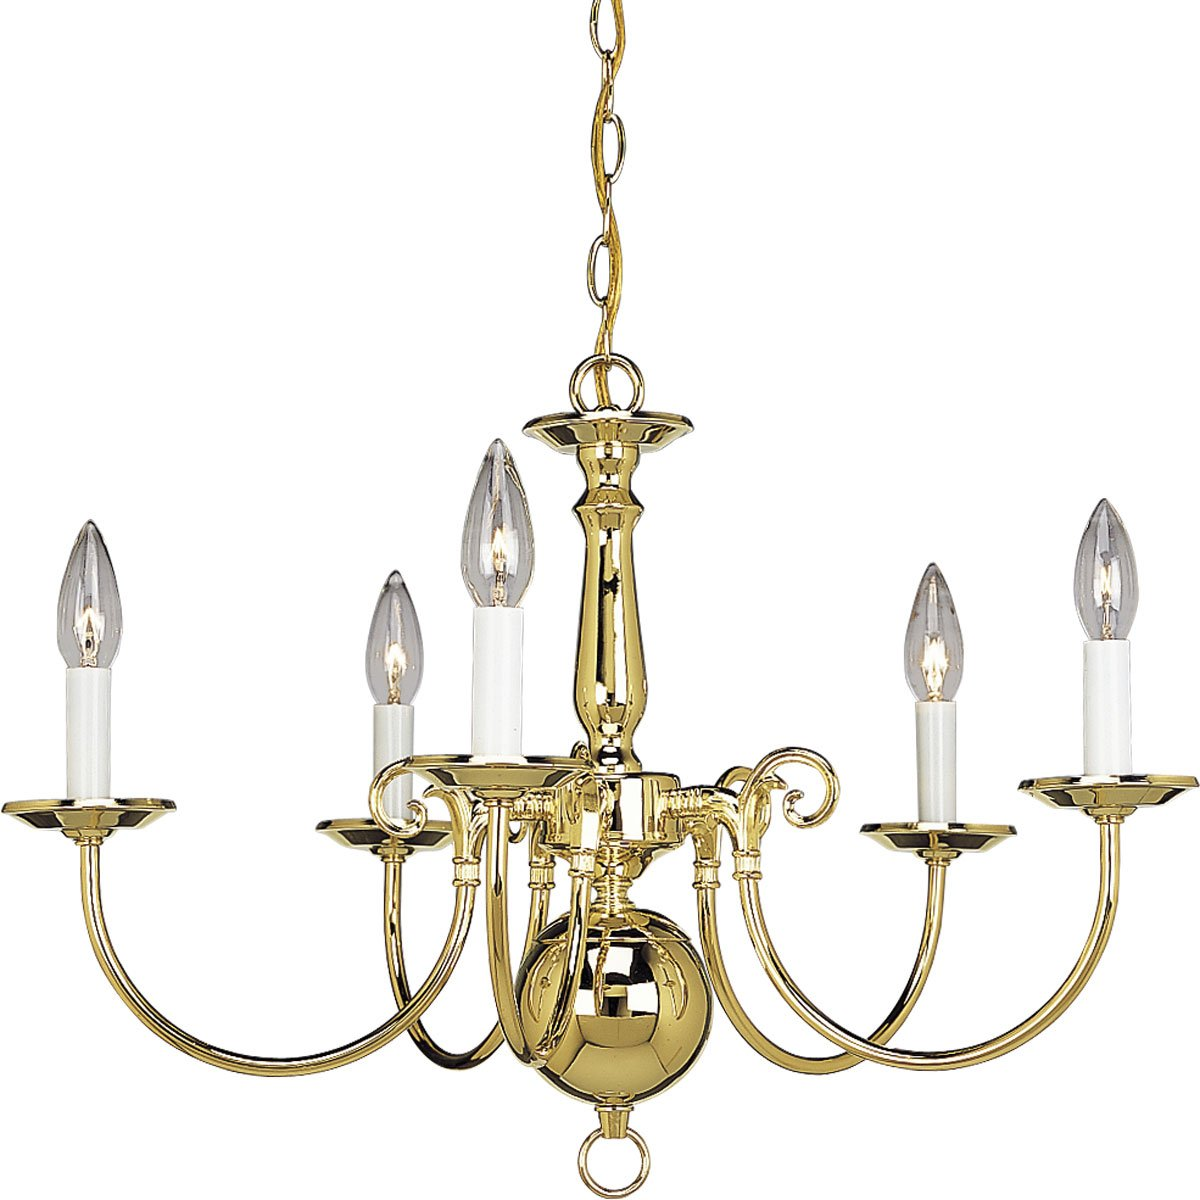 Progress lighting p4346 10 5 light americana chandelier with progress lighting p4346 10 5 light americana chandelier with delicate arms and decorative center column polished brass amazon aloadofball Choice Image